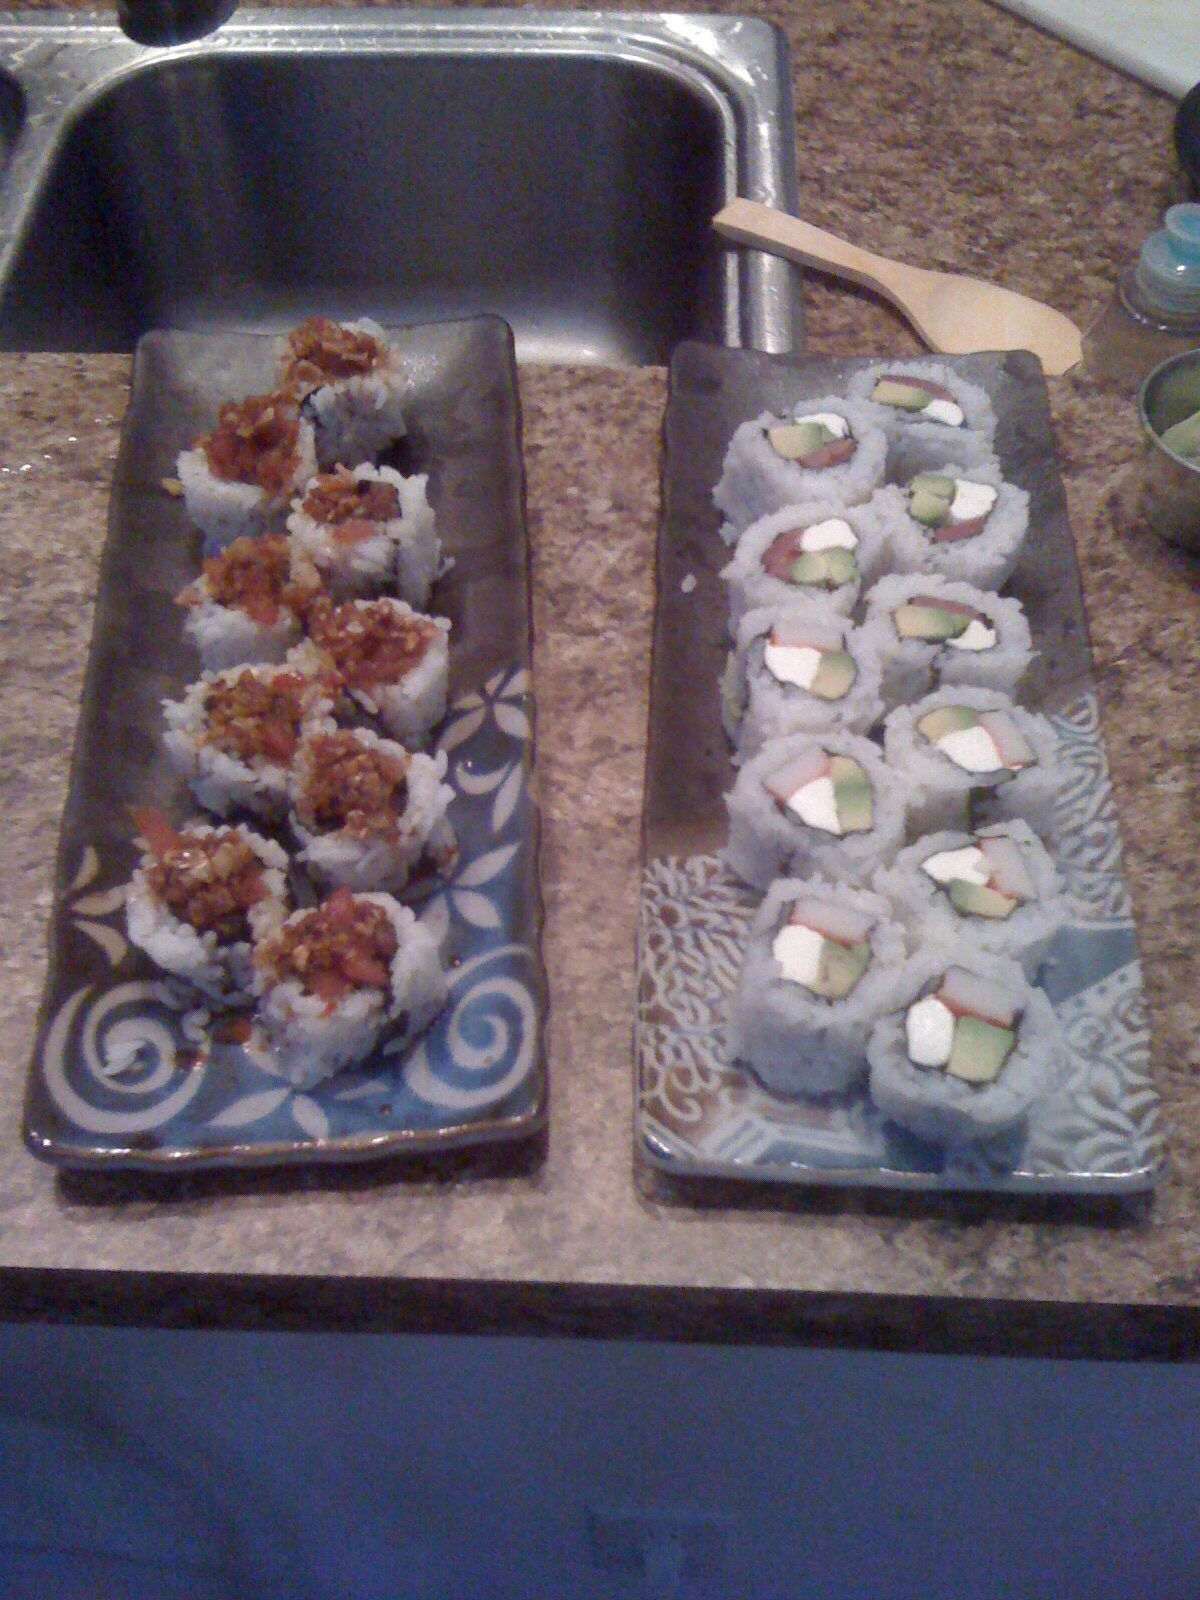 Spicy Tuna Rolls, Crab/Avocado/Cream Cheese Rools